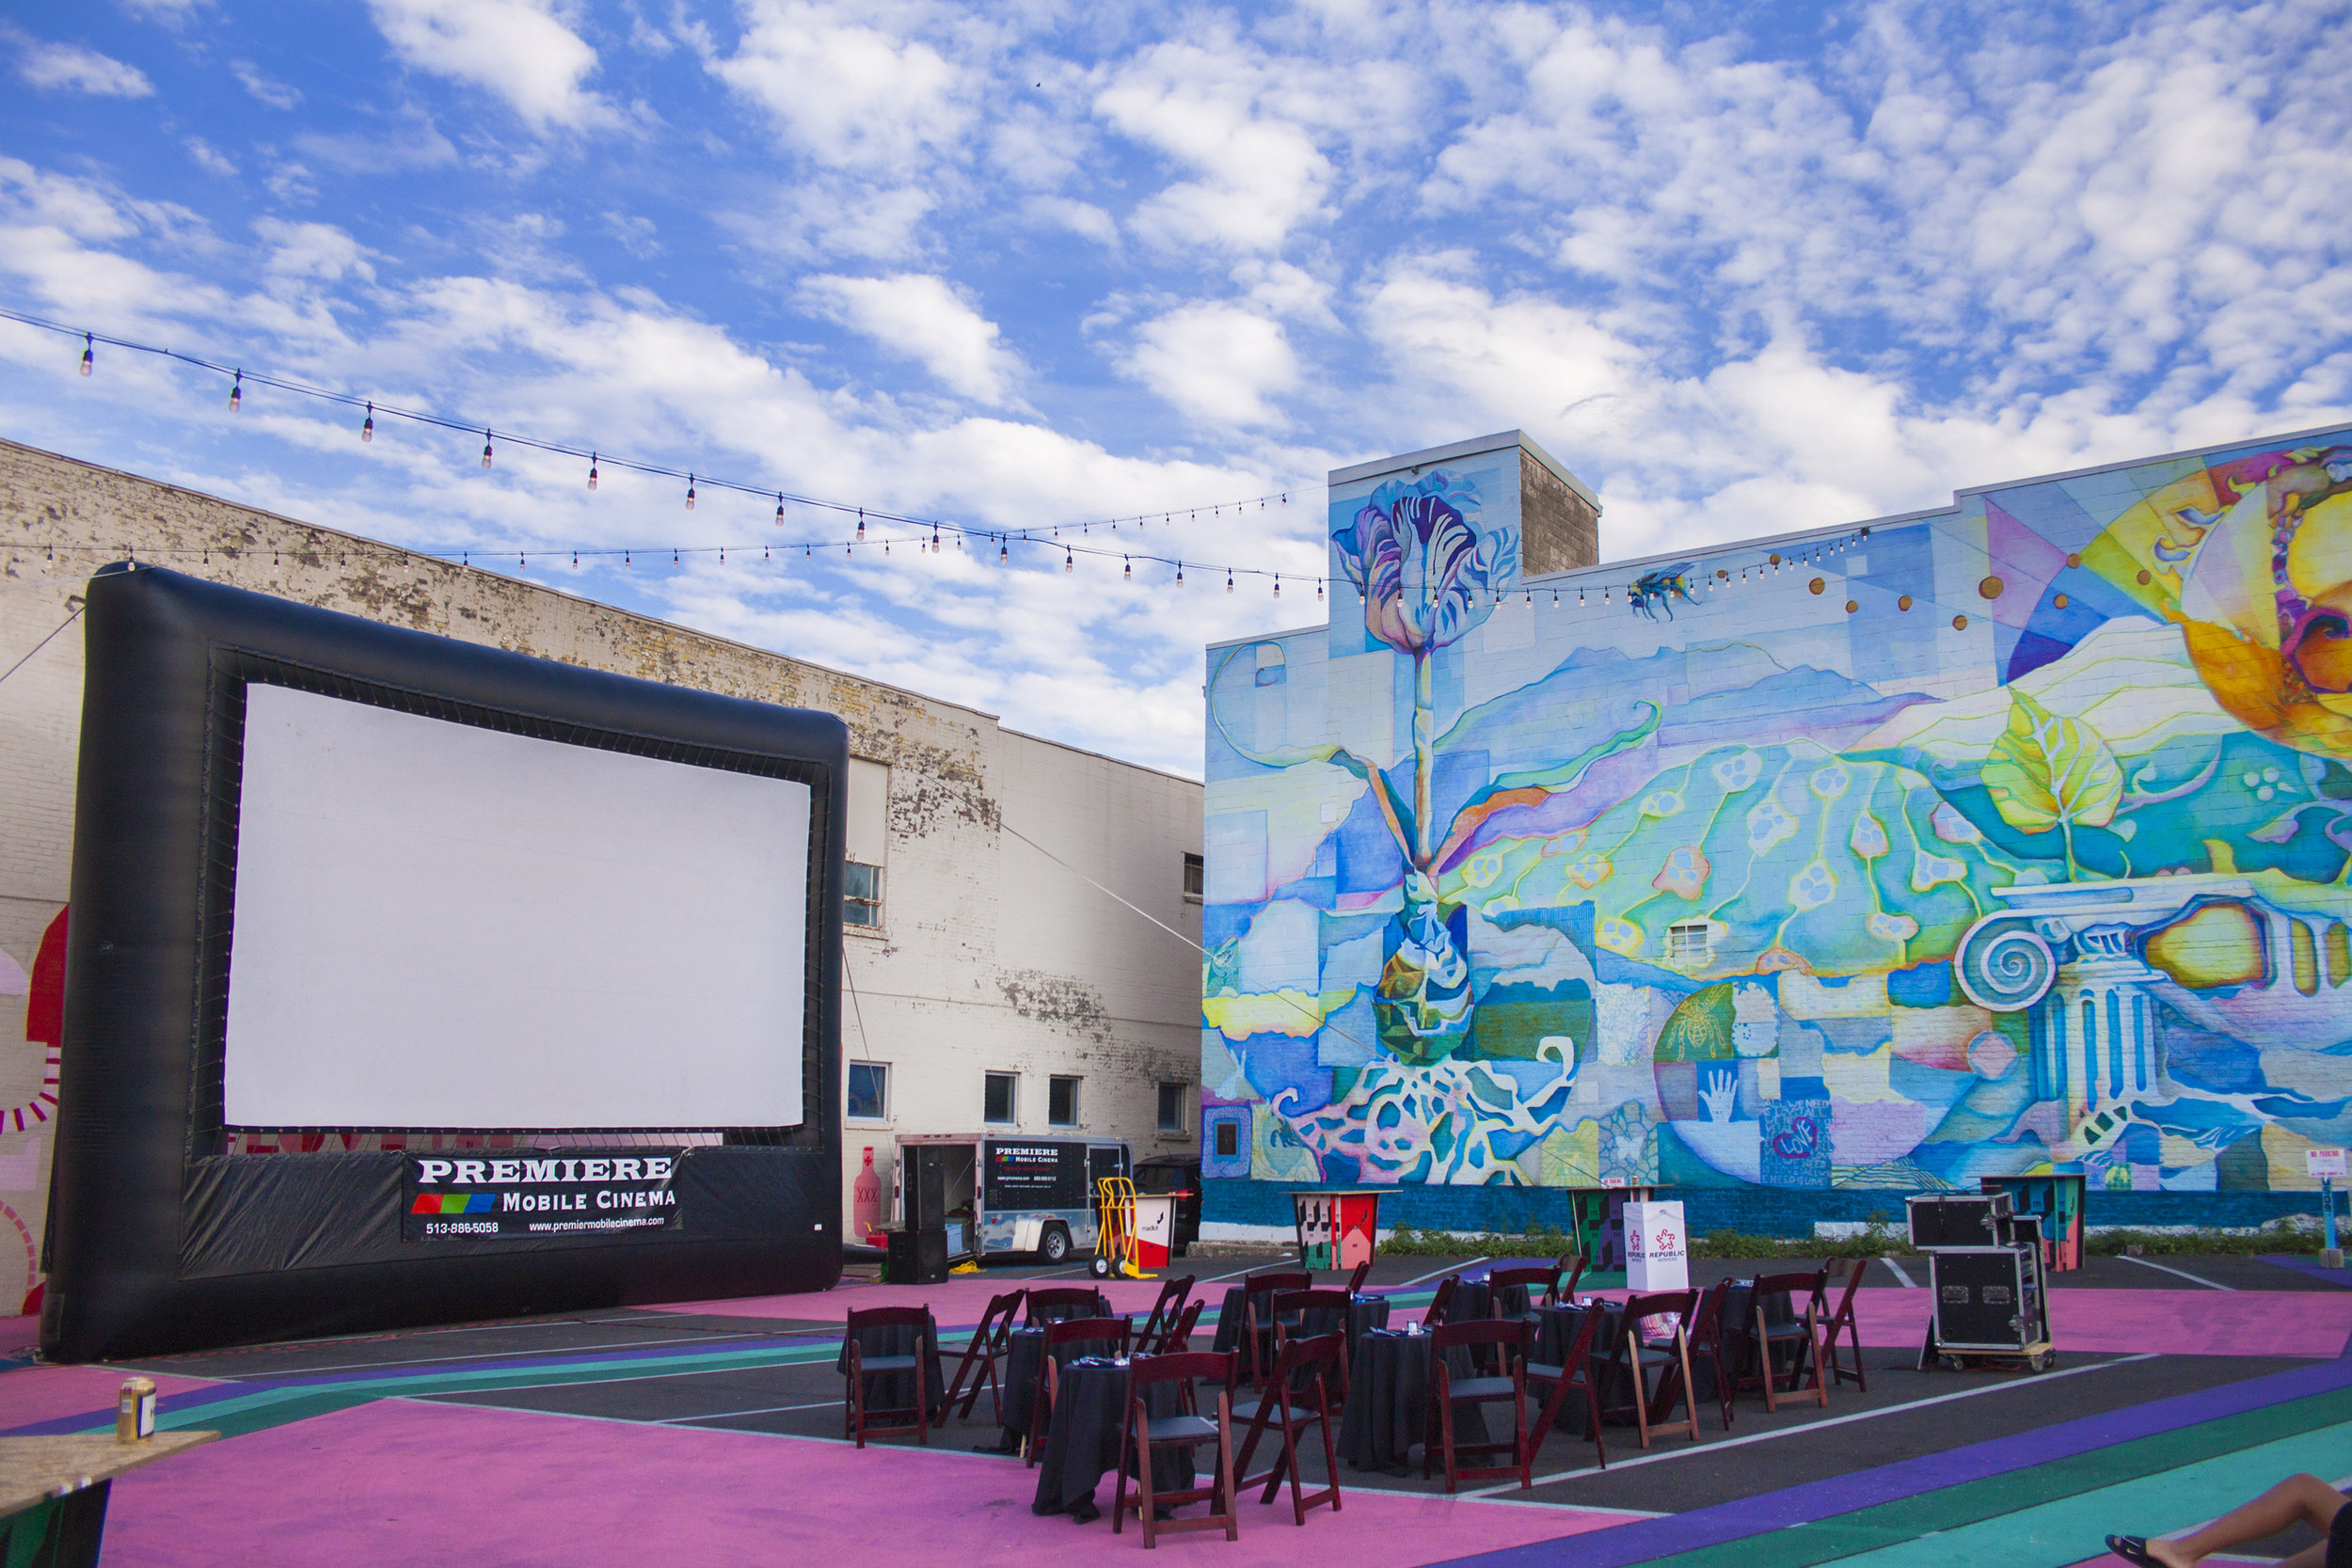 Gorilla Cinema Movie PopUp: 'The Goonies' in Covington's MadLot featuring a free screening with food + cocktails themed to the film